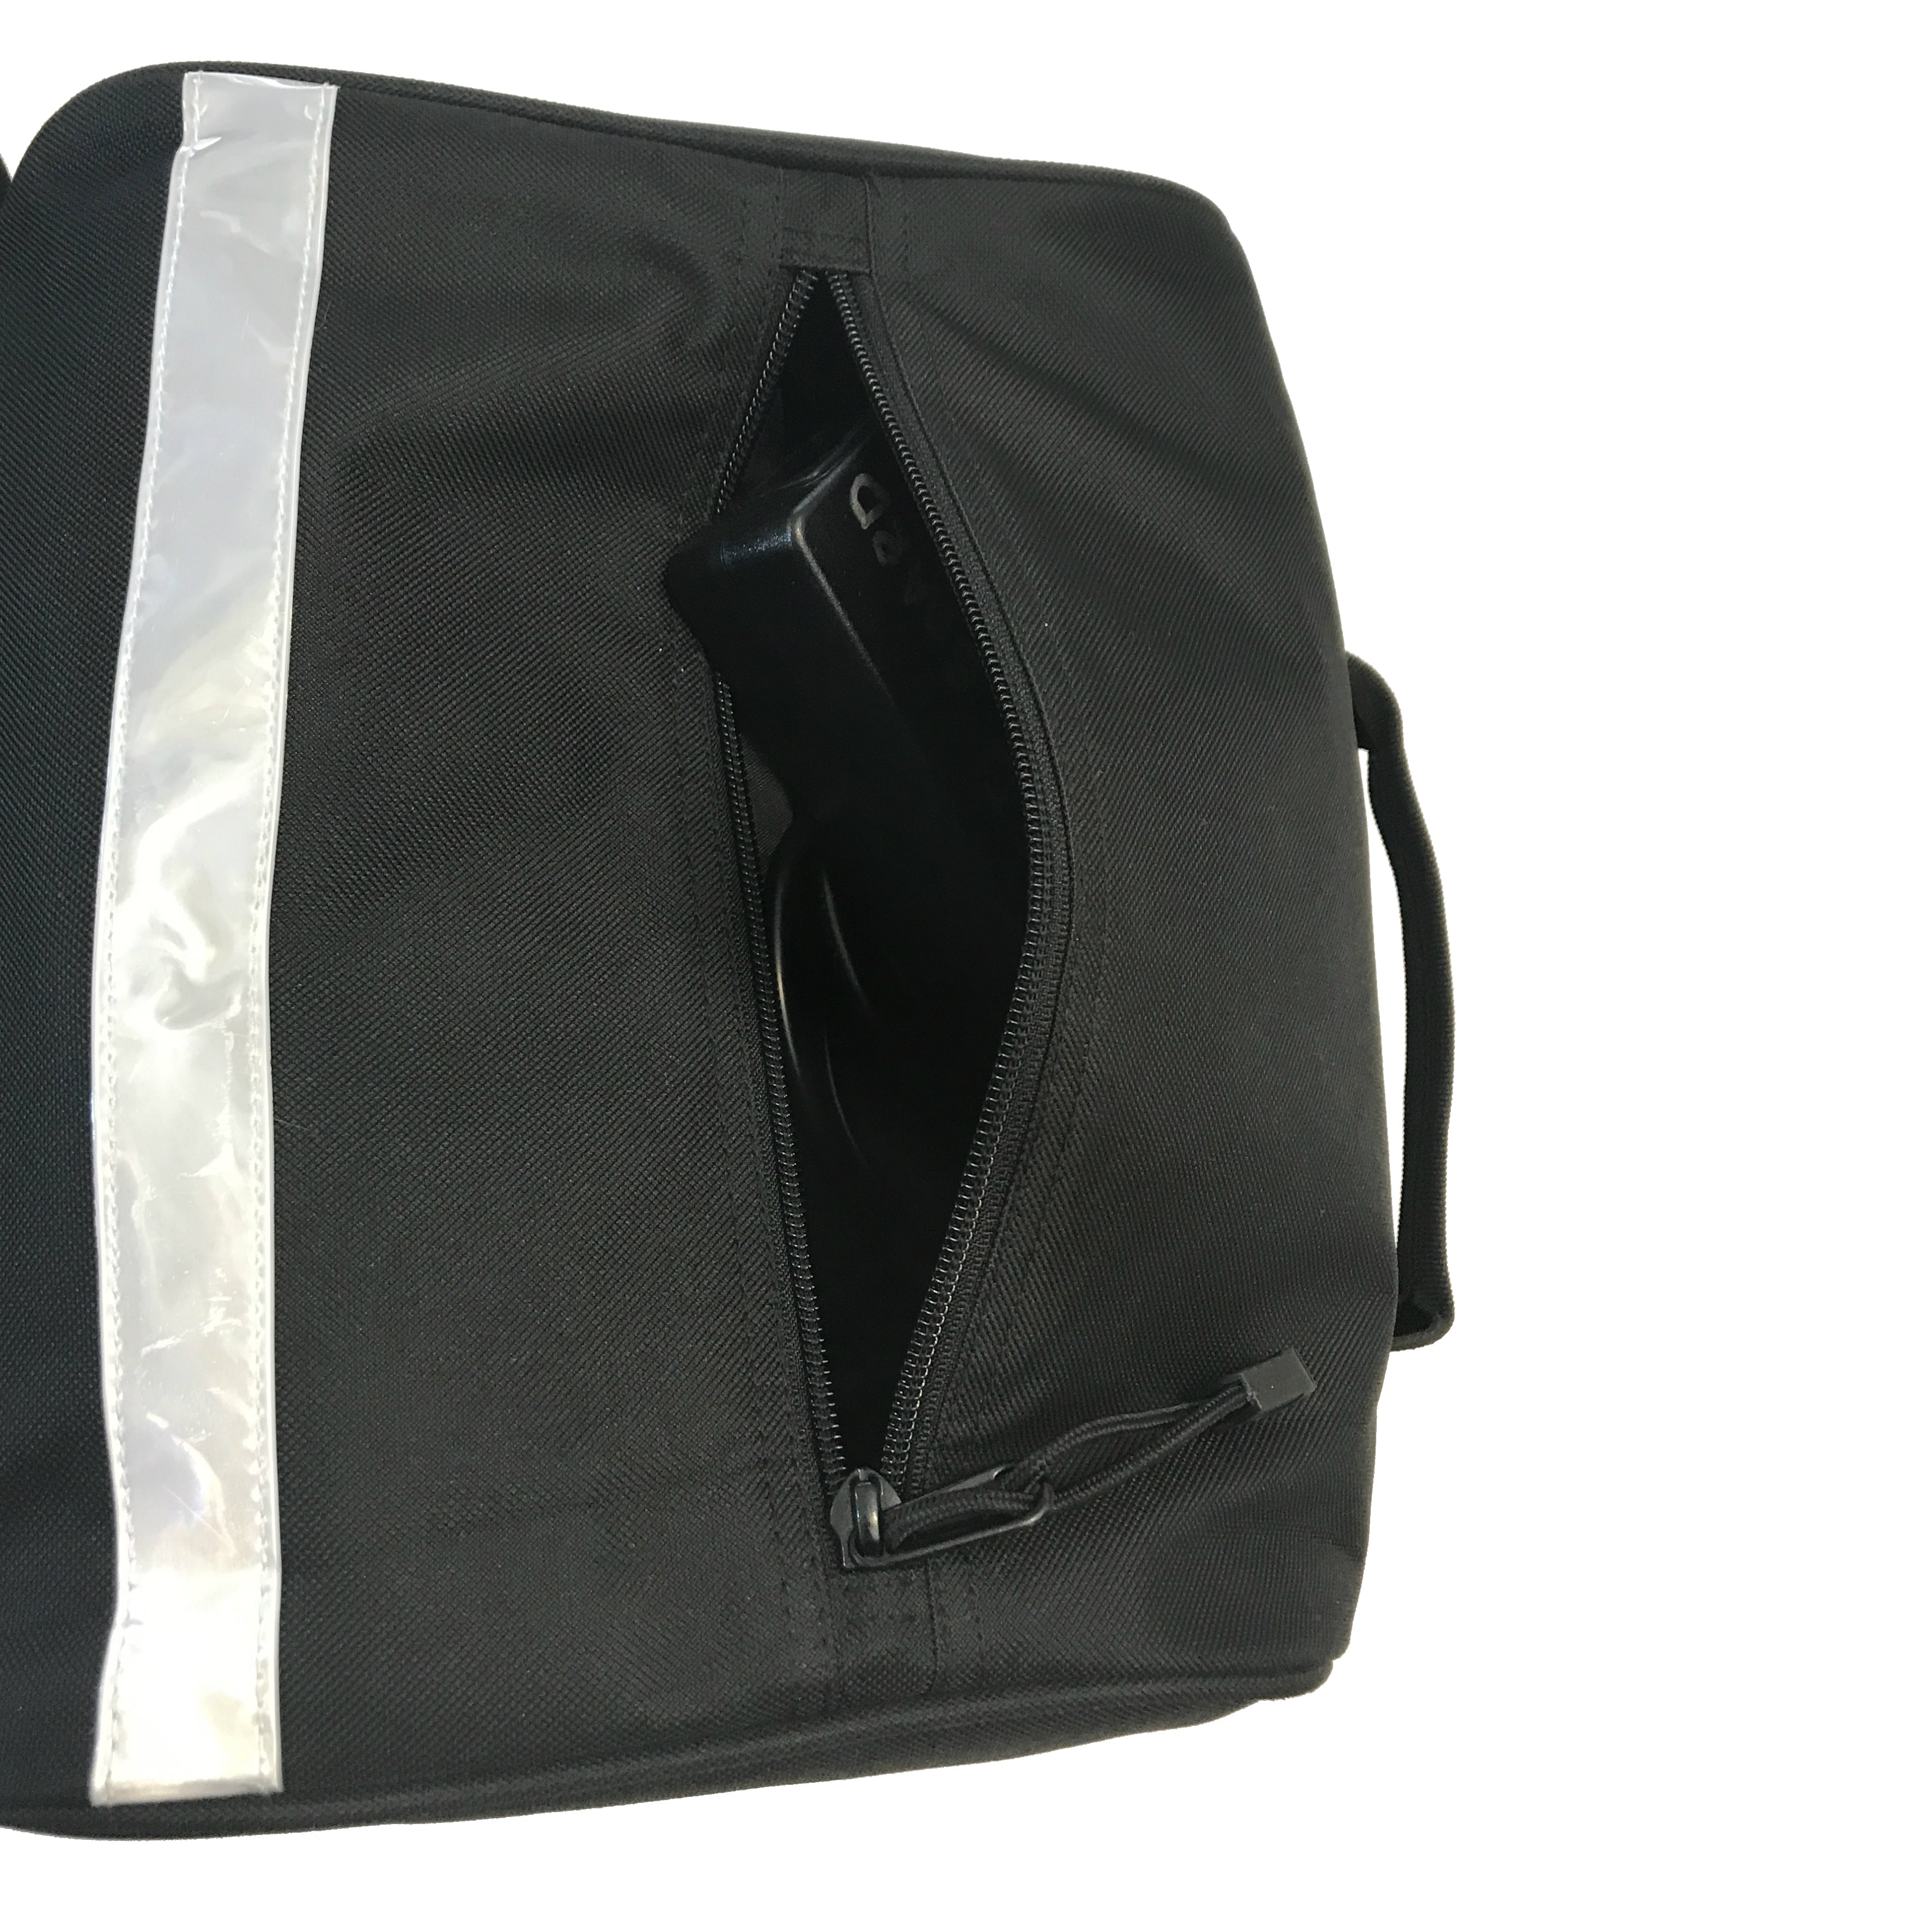 Slimfit Mini Backpack XX - Boosted Mini Travel Bag (BrdBag G6.0)